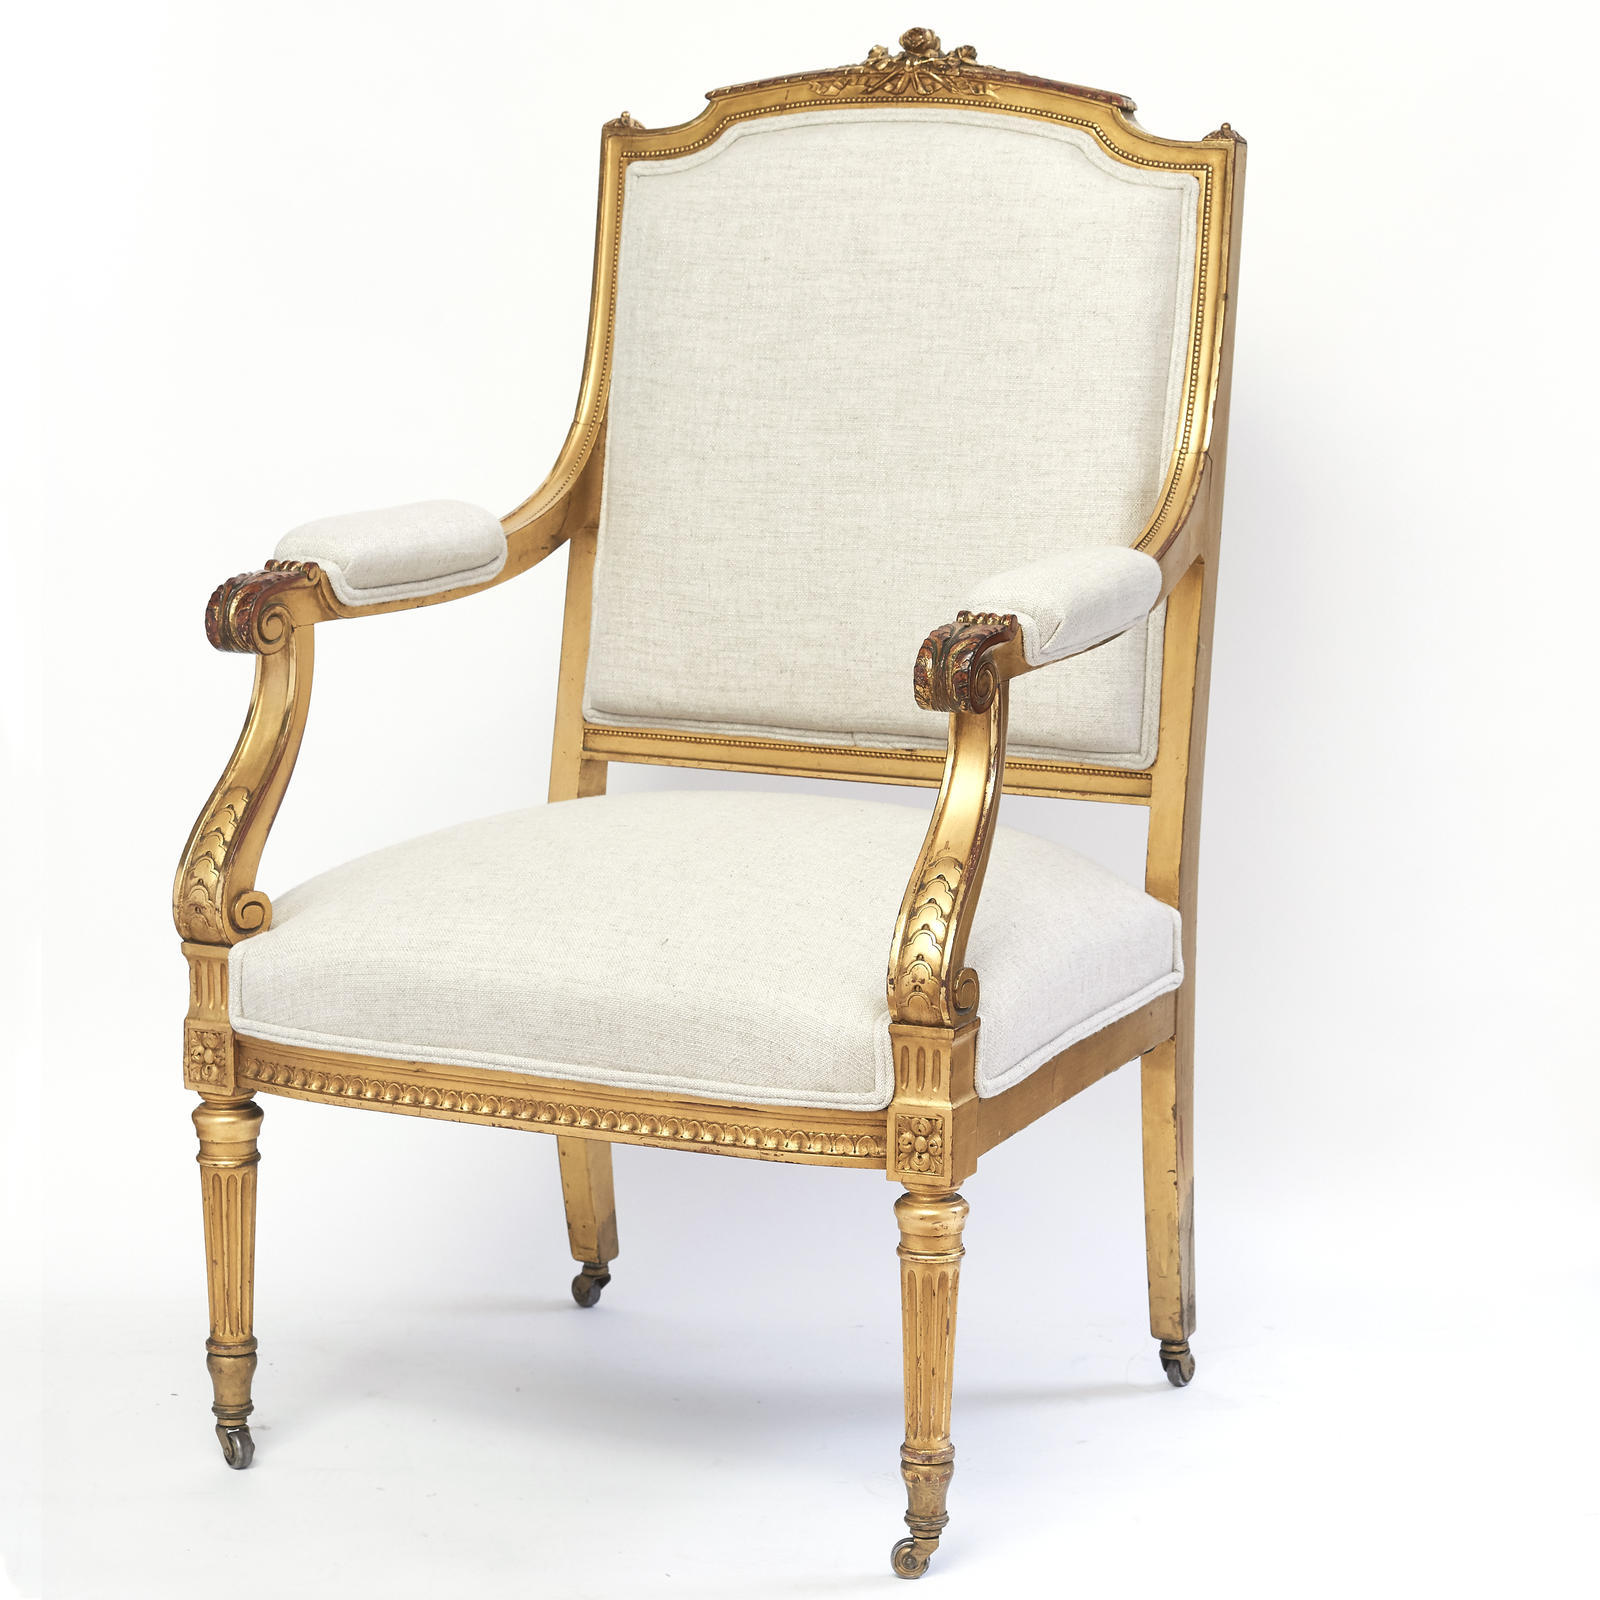 Louis XVI Style Gilt Wood Fauteuil